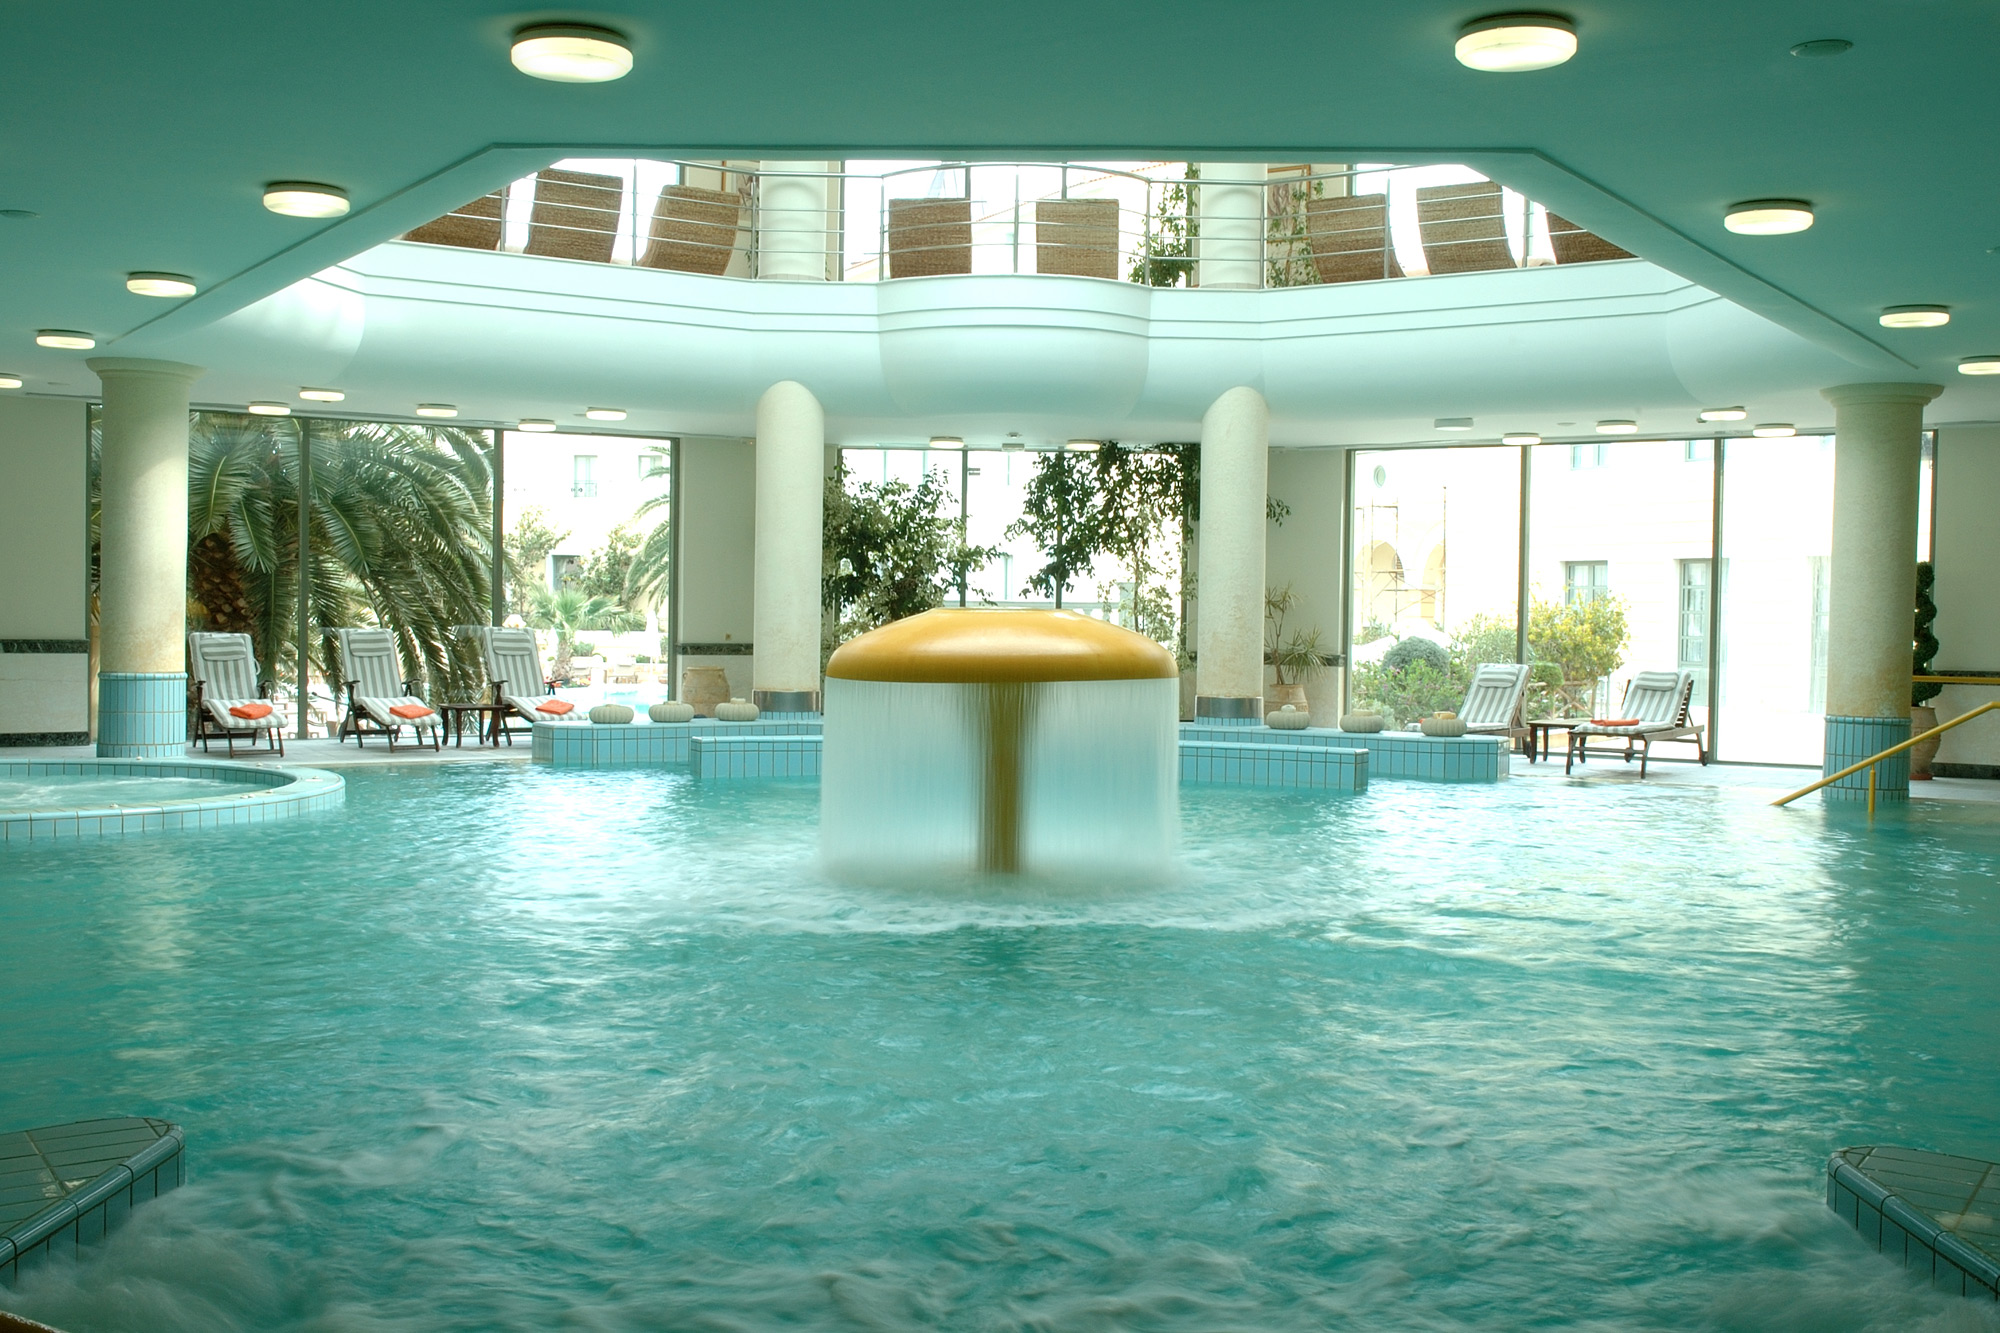 Thermae sylla spa wellness hotel pantou for Wellness hotel